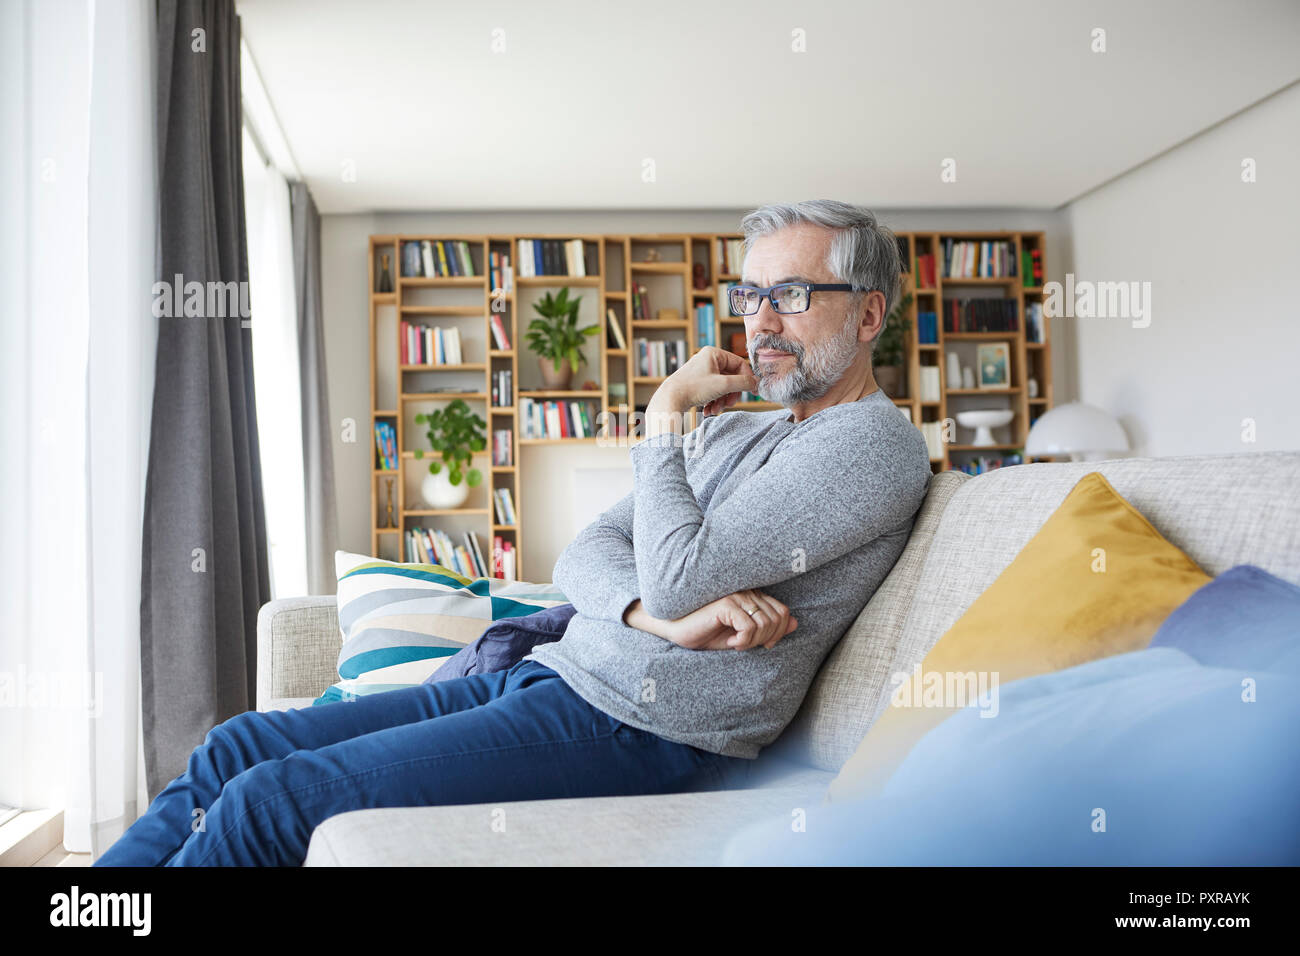 Pensive mature man sitting on couch in his living room looking out of window - Stock Image